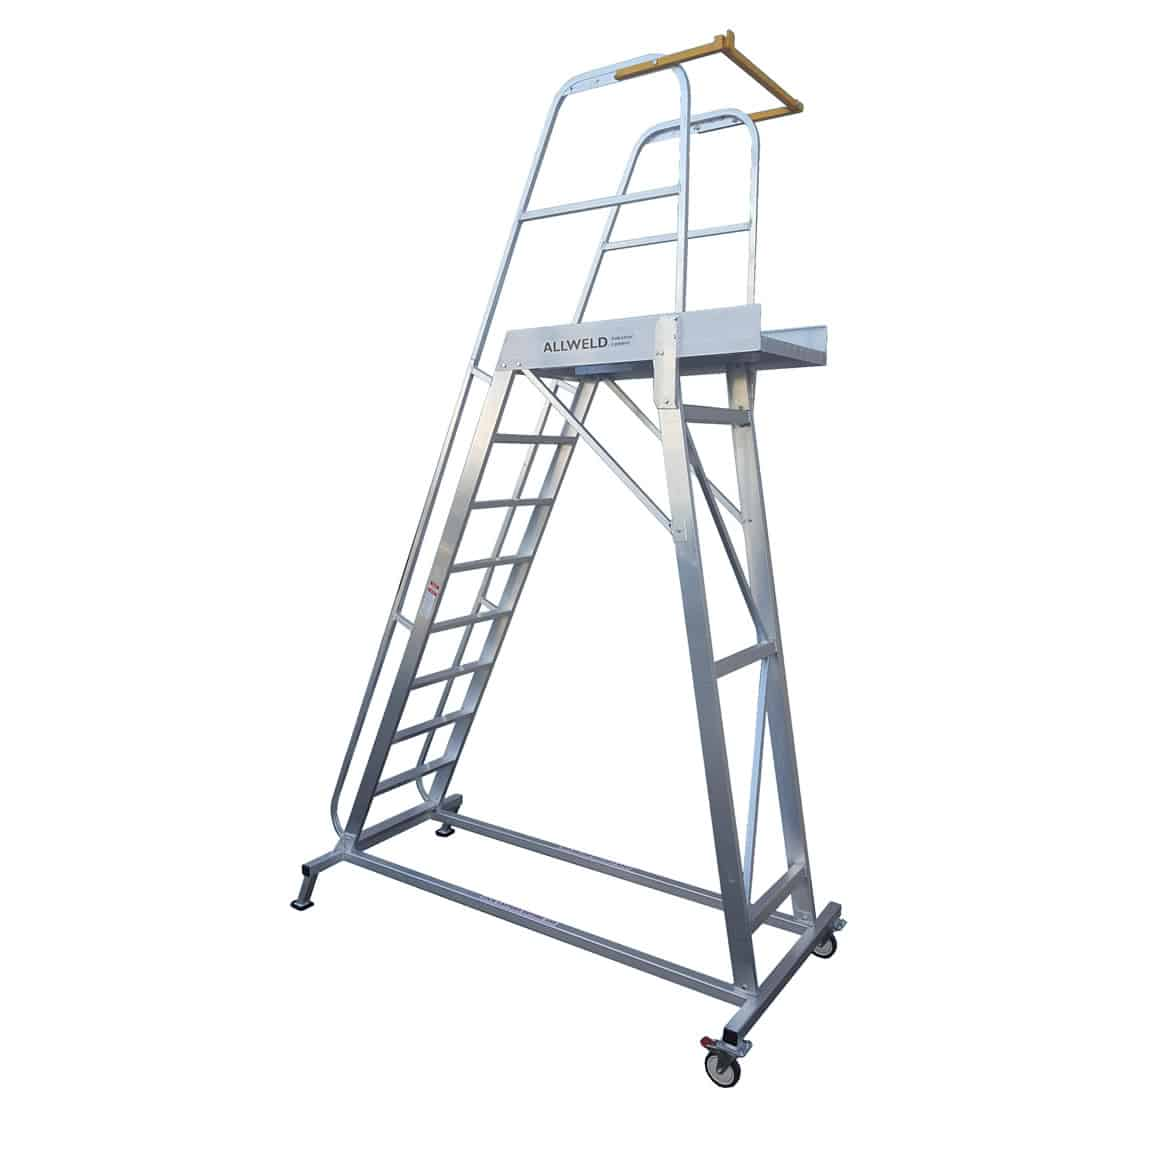 Allweld Order Picking Walk Through Ladders from $1,600 | The Castor Master